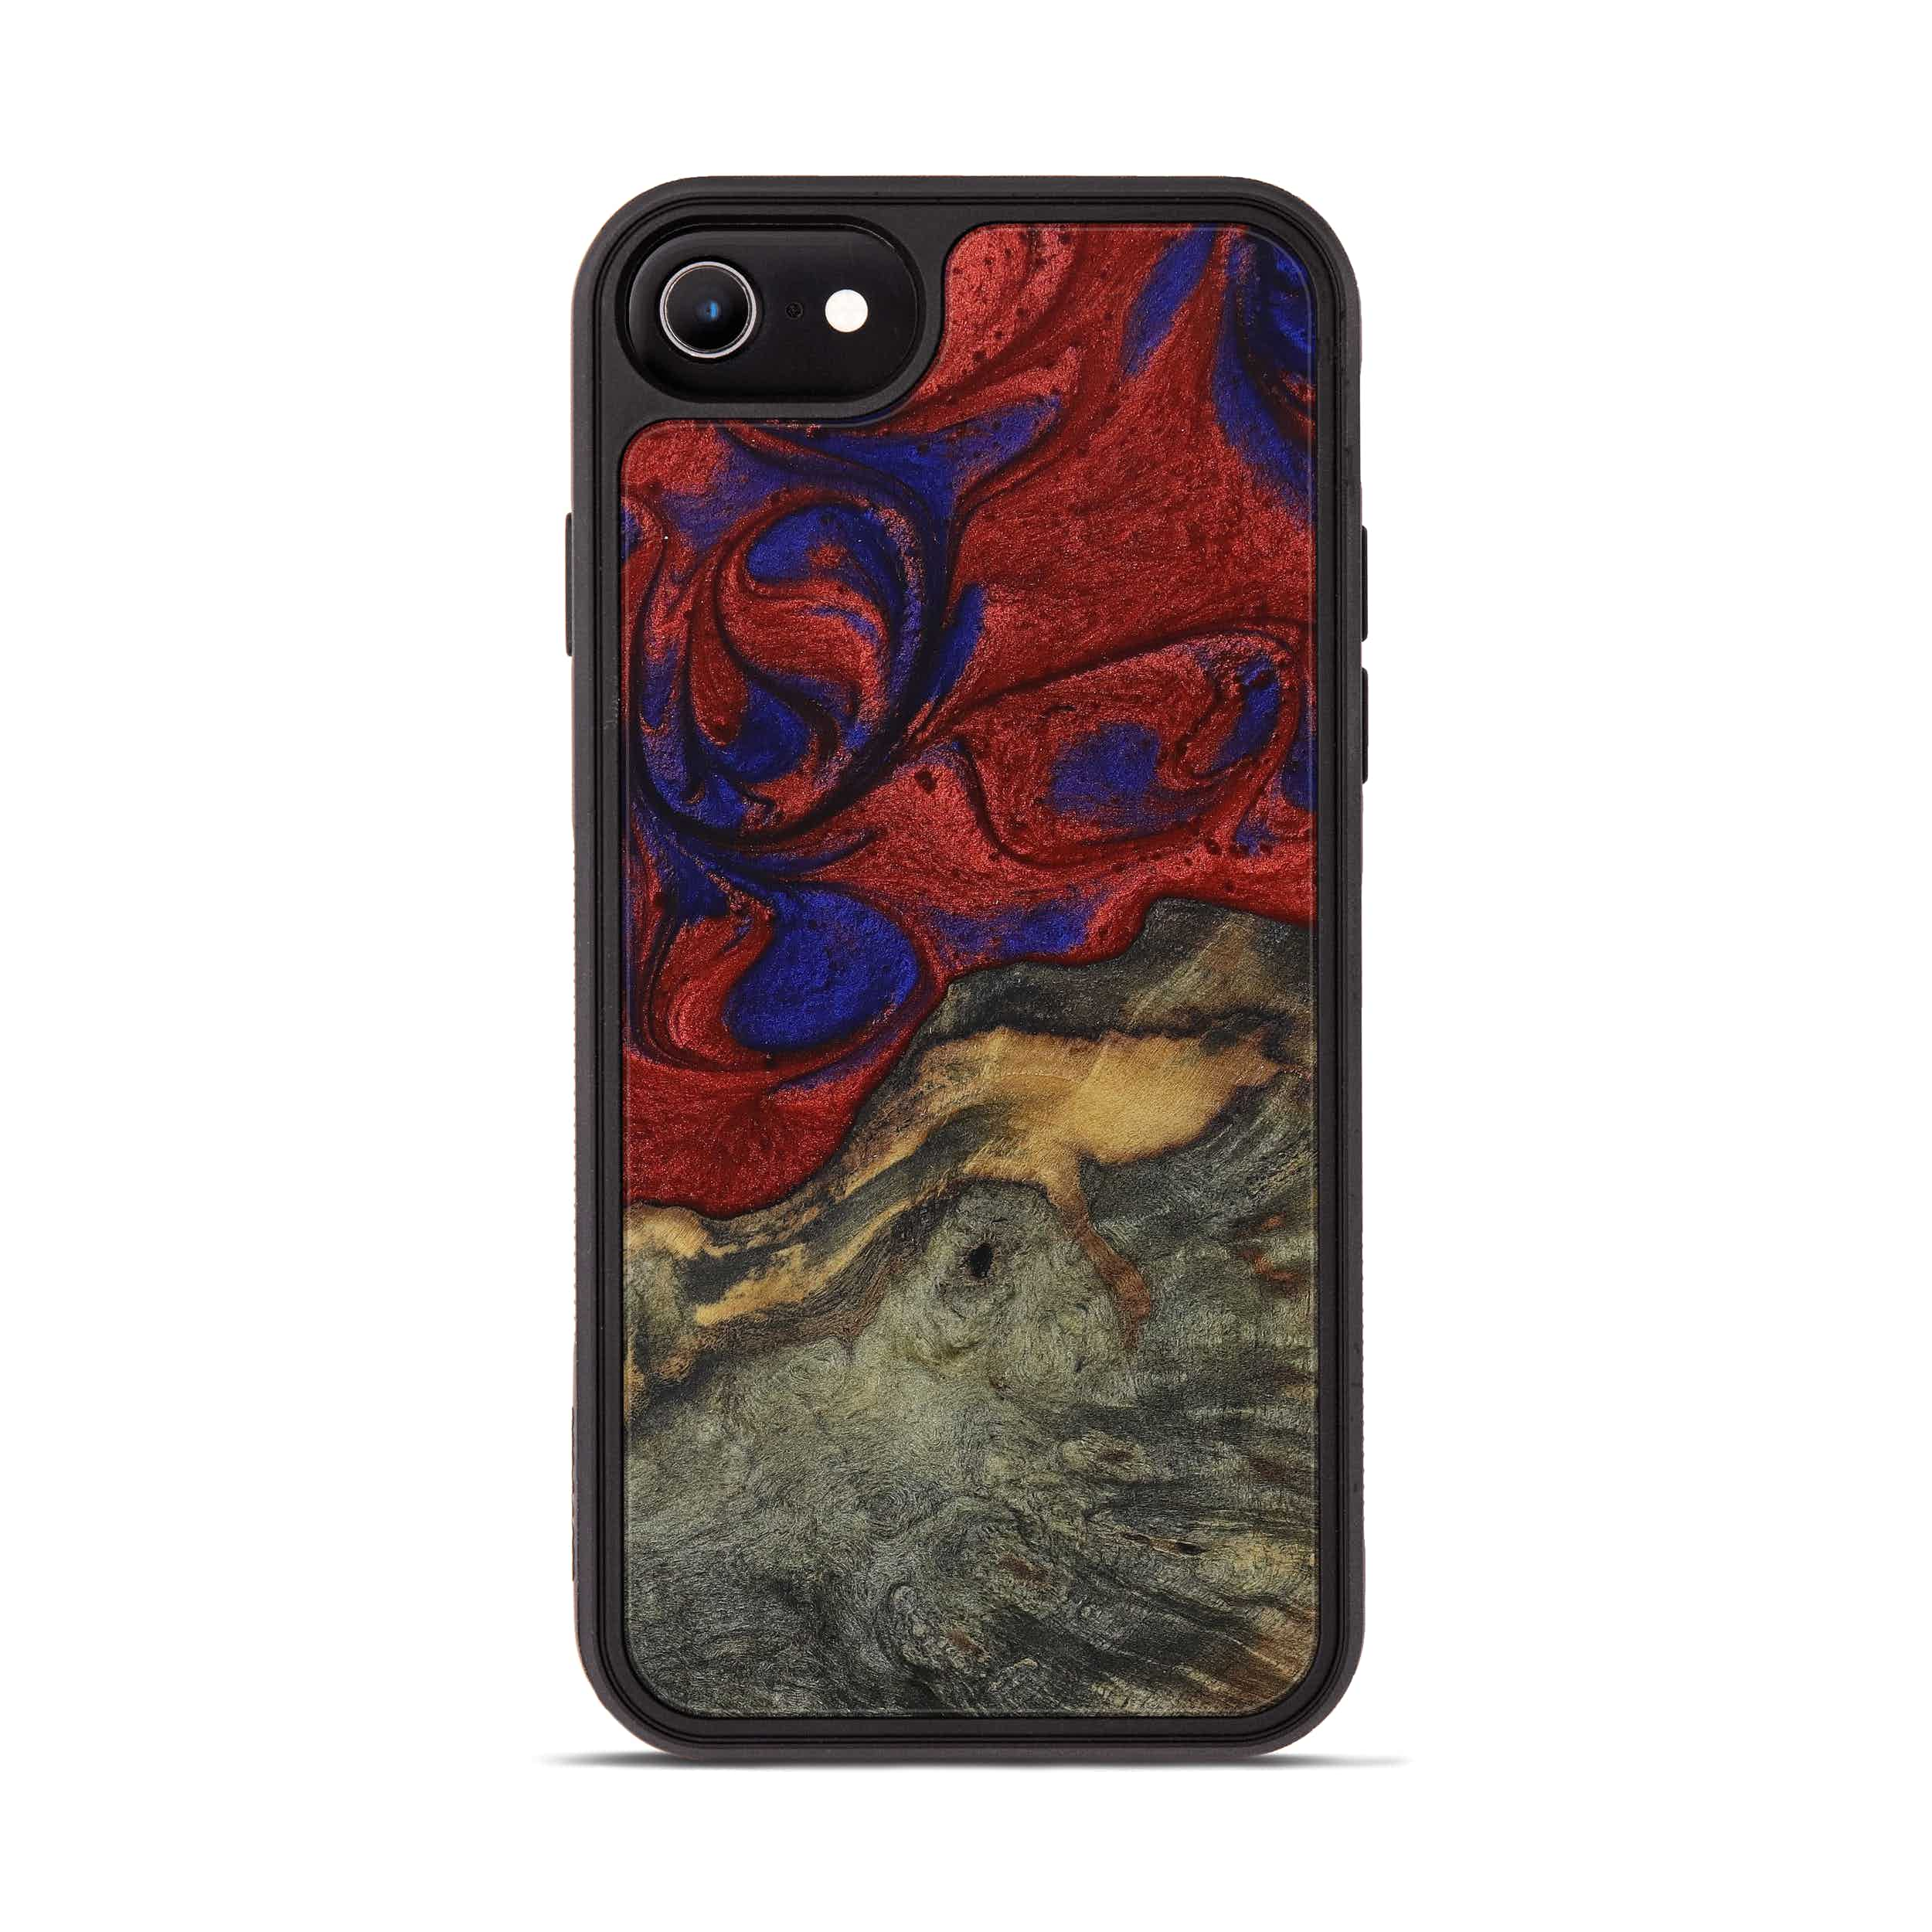 iPhone 6s Wood+Resin Phone Case - Marv (Blue & Red, 395973)